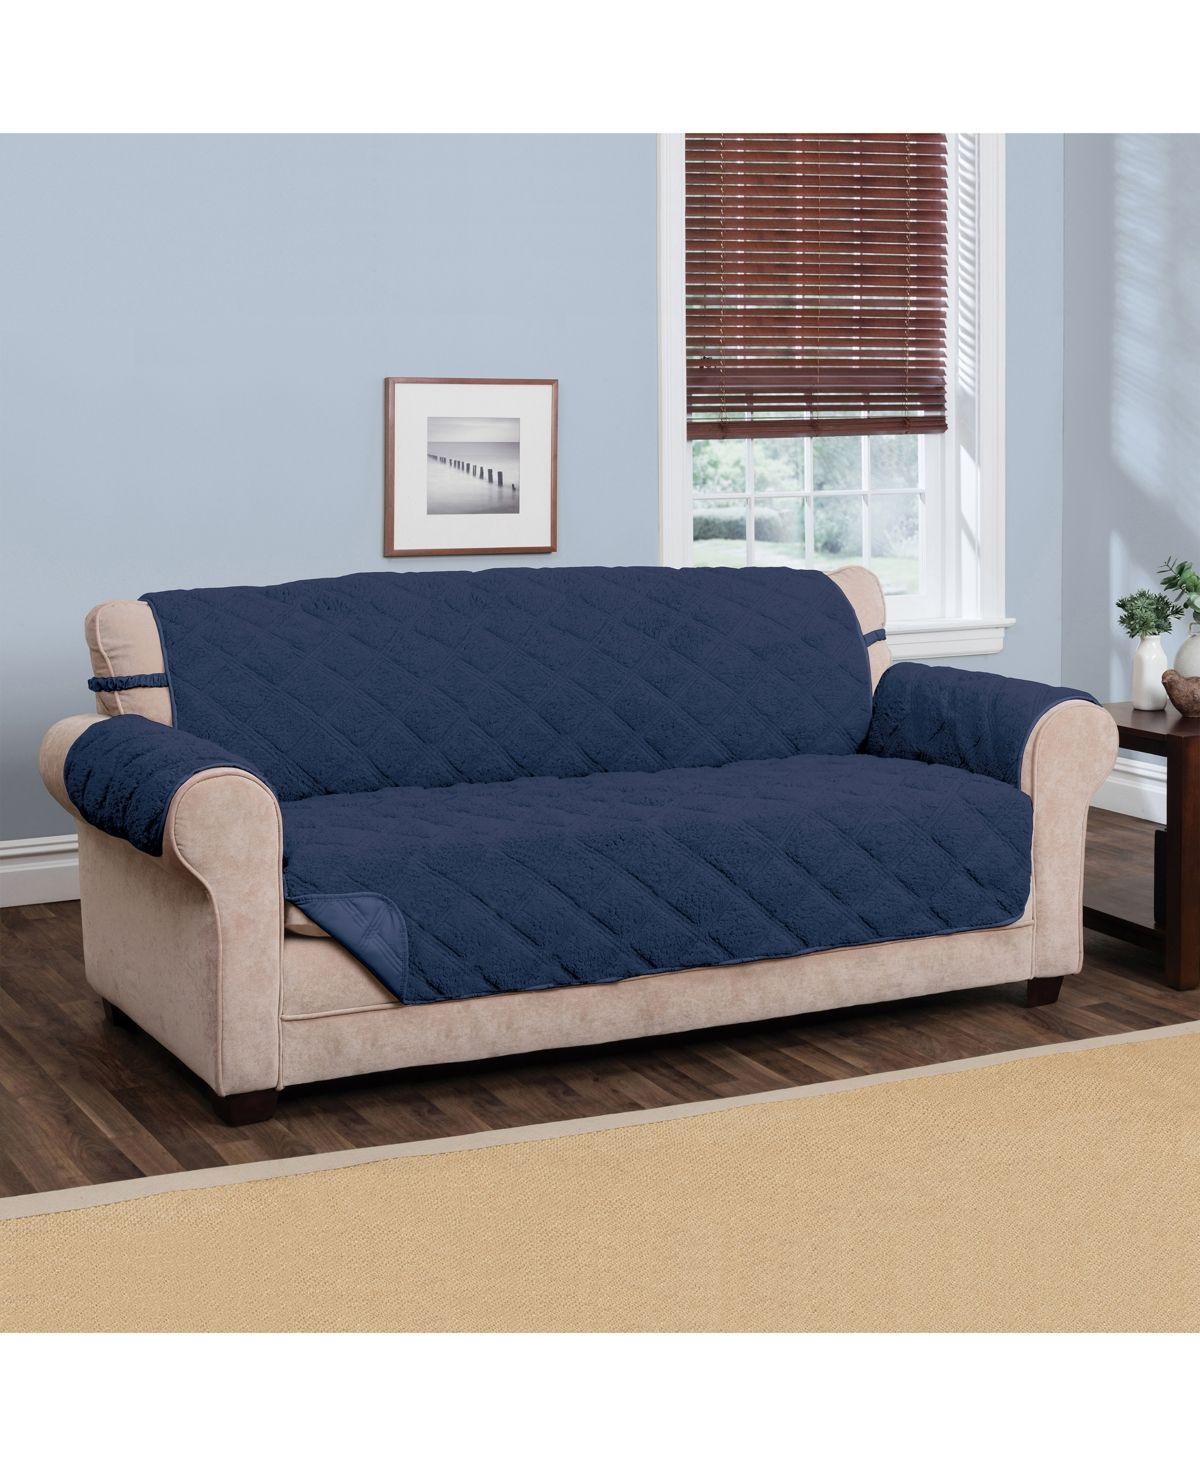 Hudson Xl Sofa Slipcover Products In 2019 Sofa Slipcovers